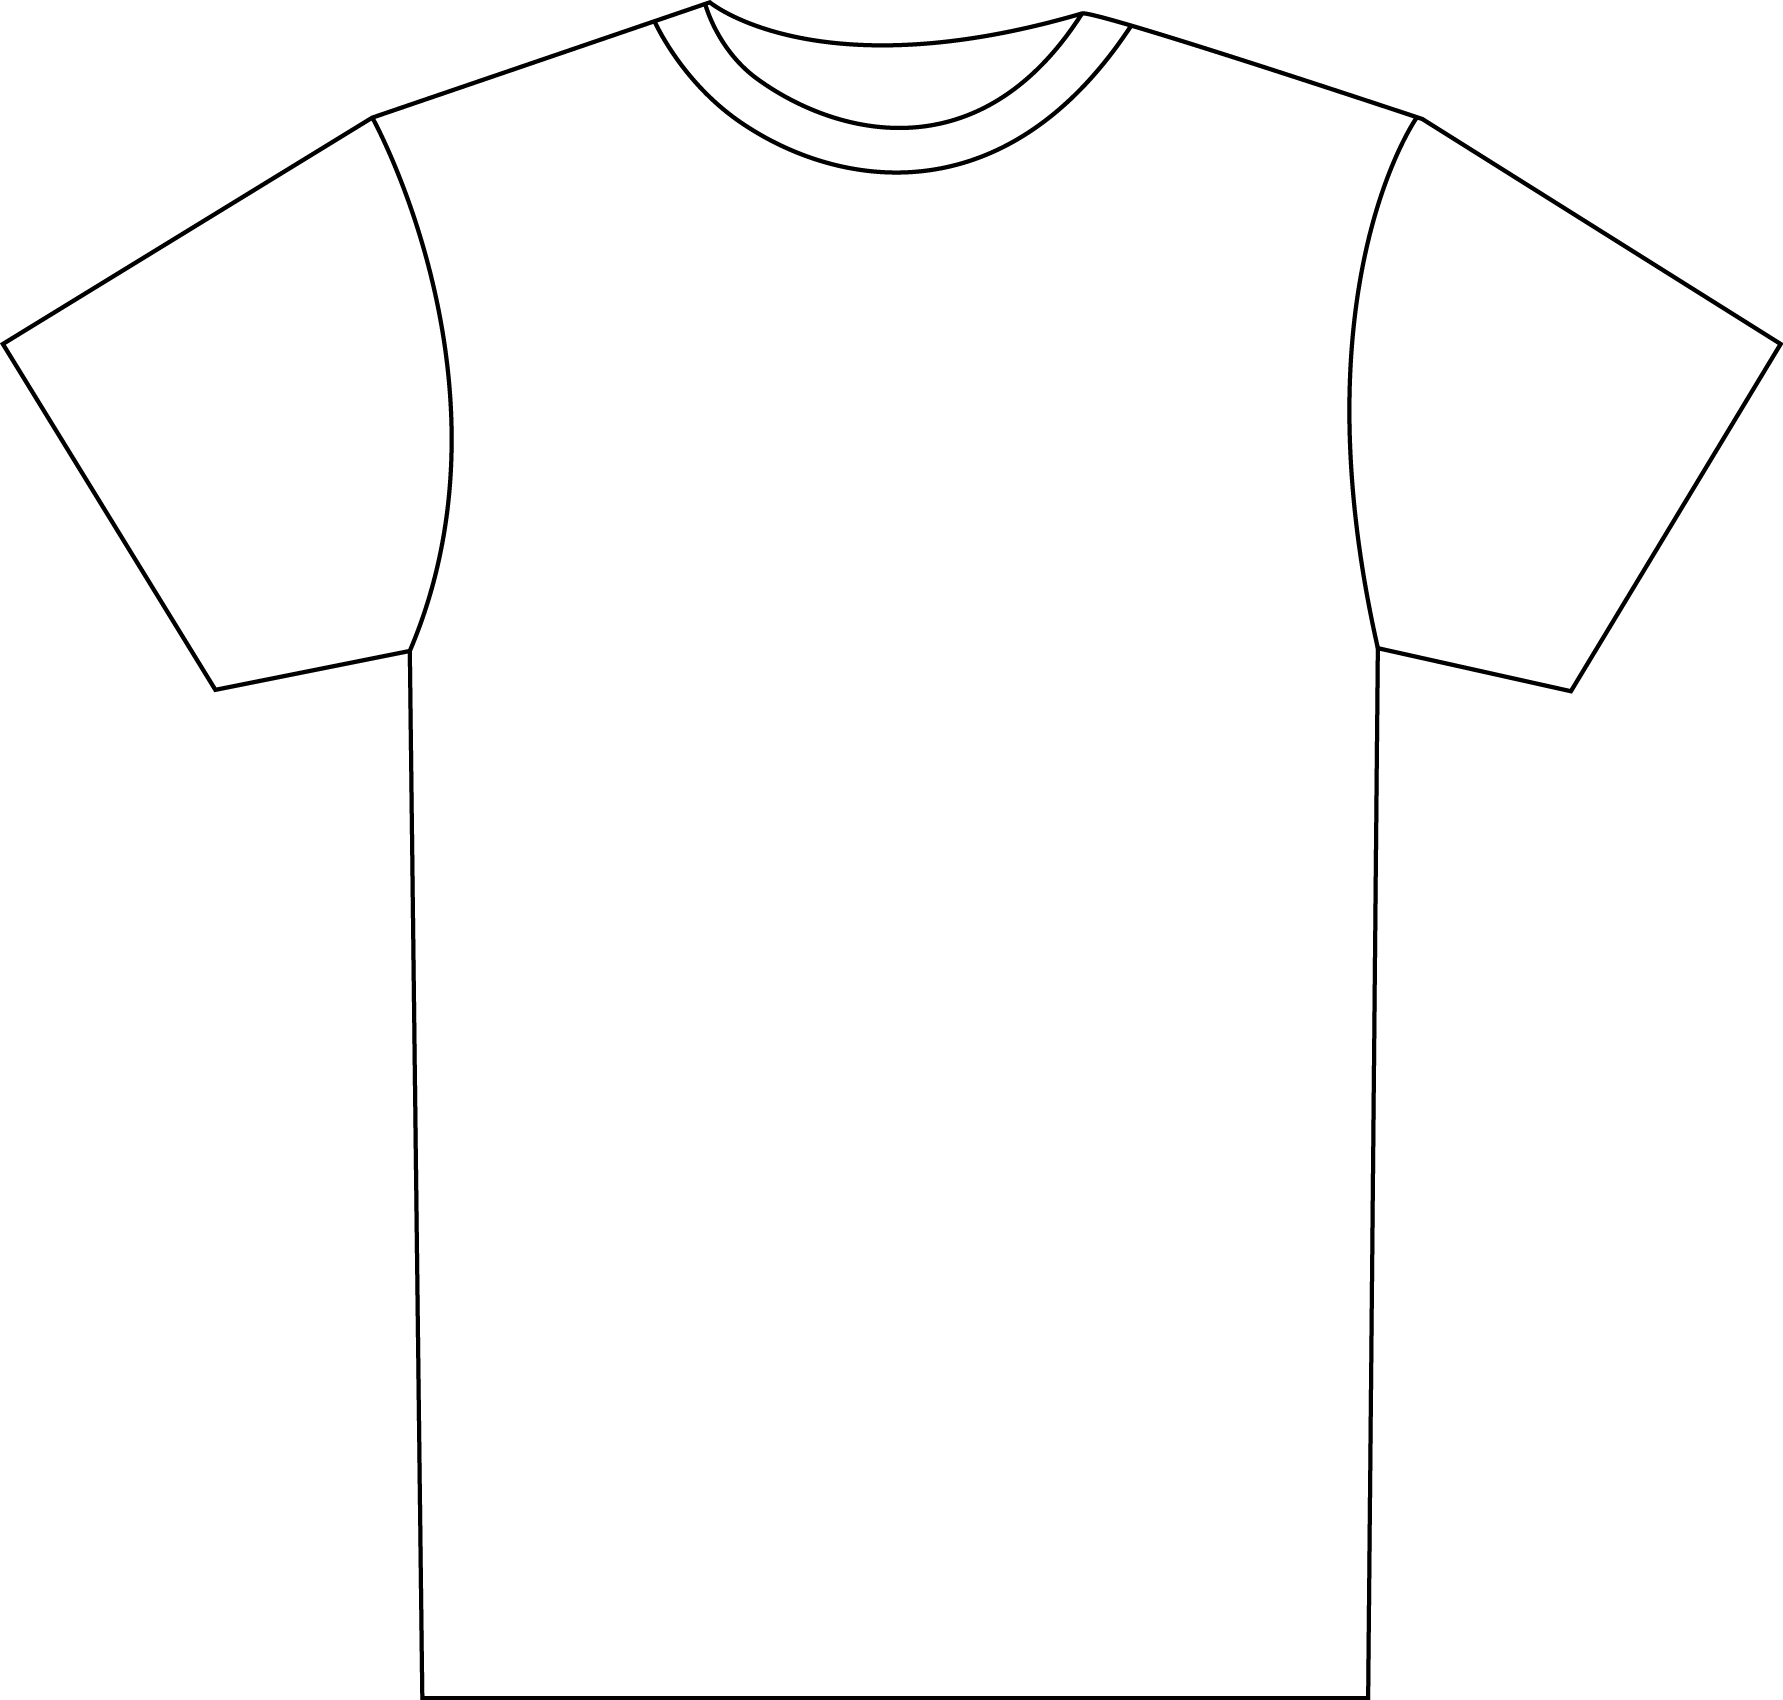 Transparent t-shirt clip art - Transparent Tshirt White T Shirt - Outline Of Football Shirt